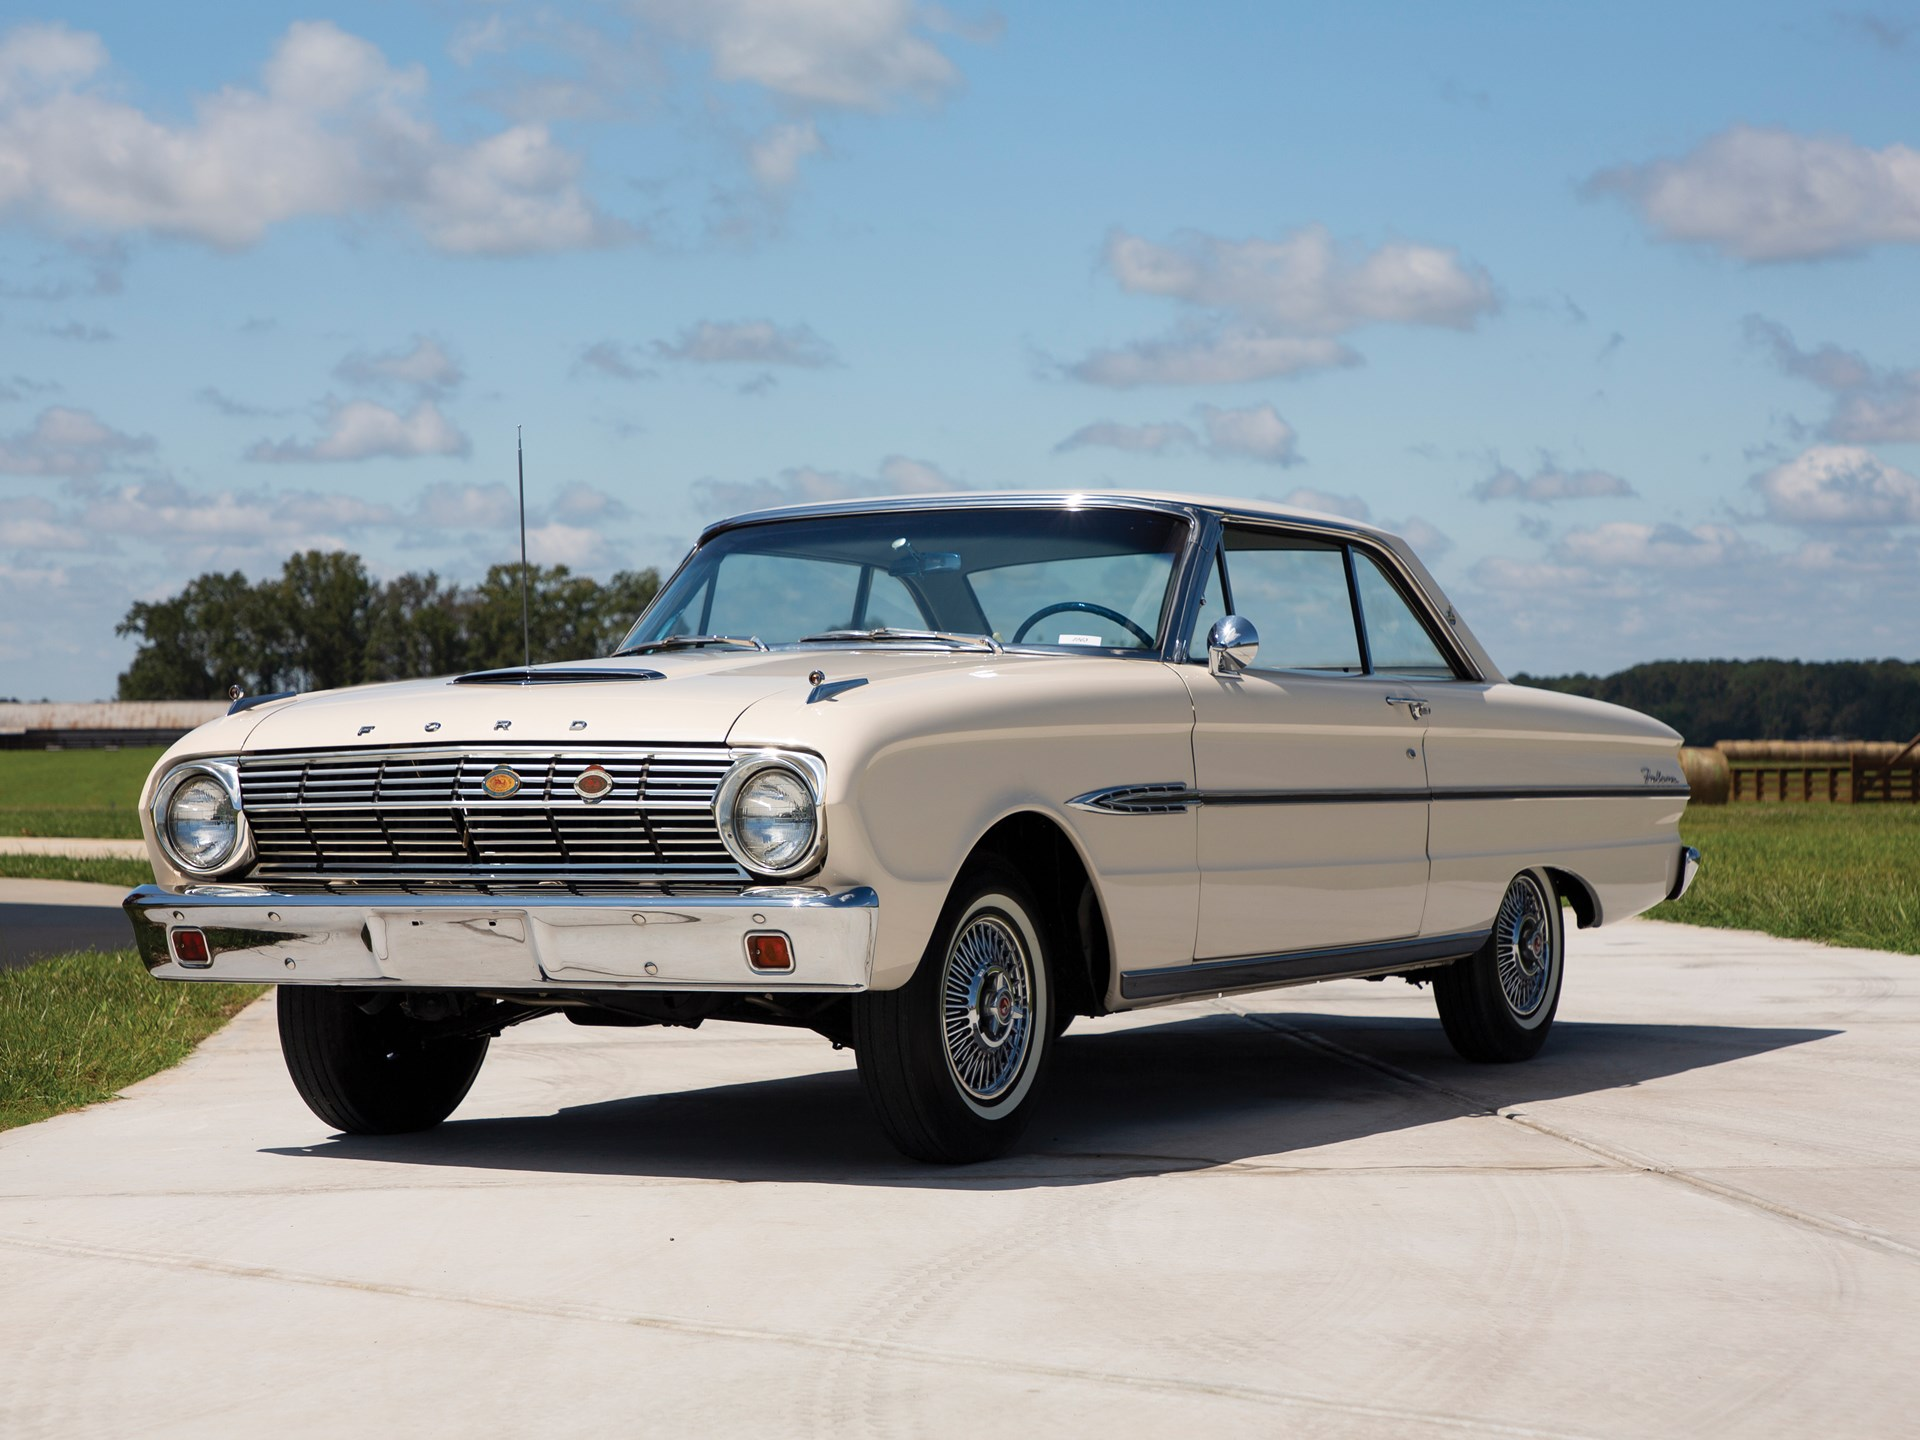 RM Sotheby's - 1963 Ford Falcon Futura Sport Coupe | Hershey